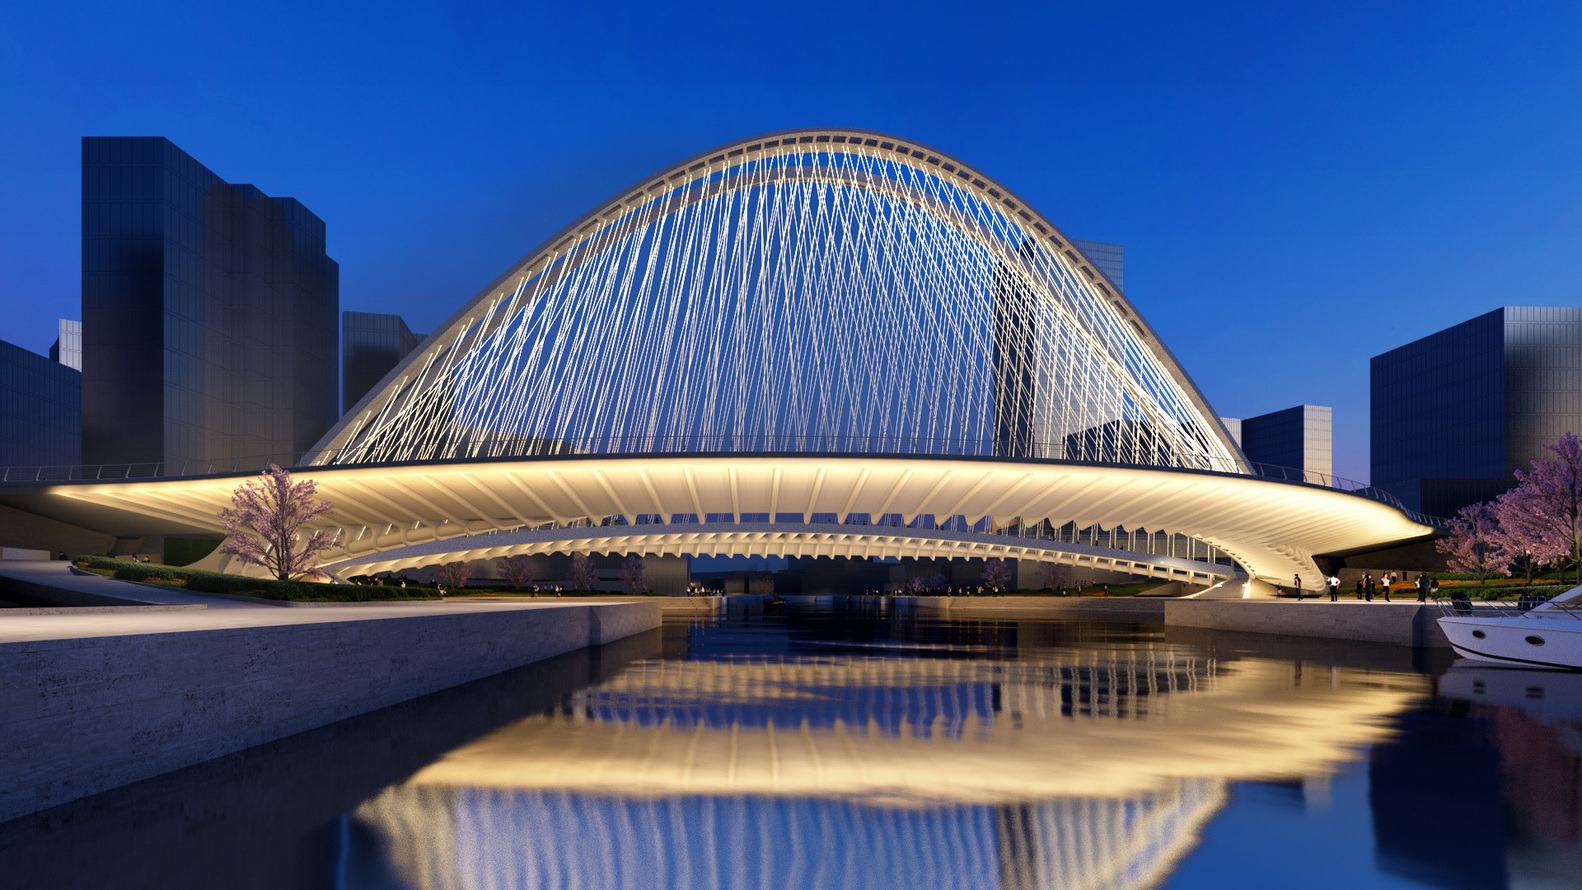 Santiago Calatrava - a gallery on Flickr